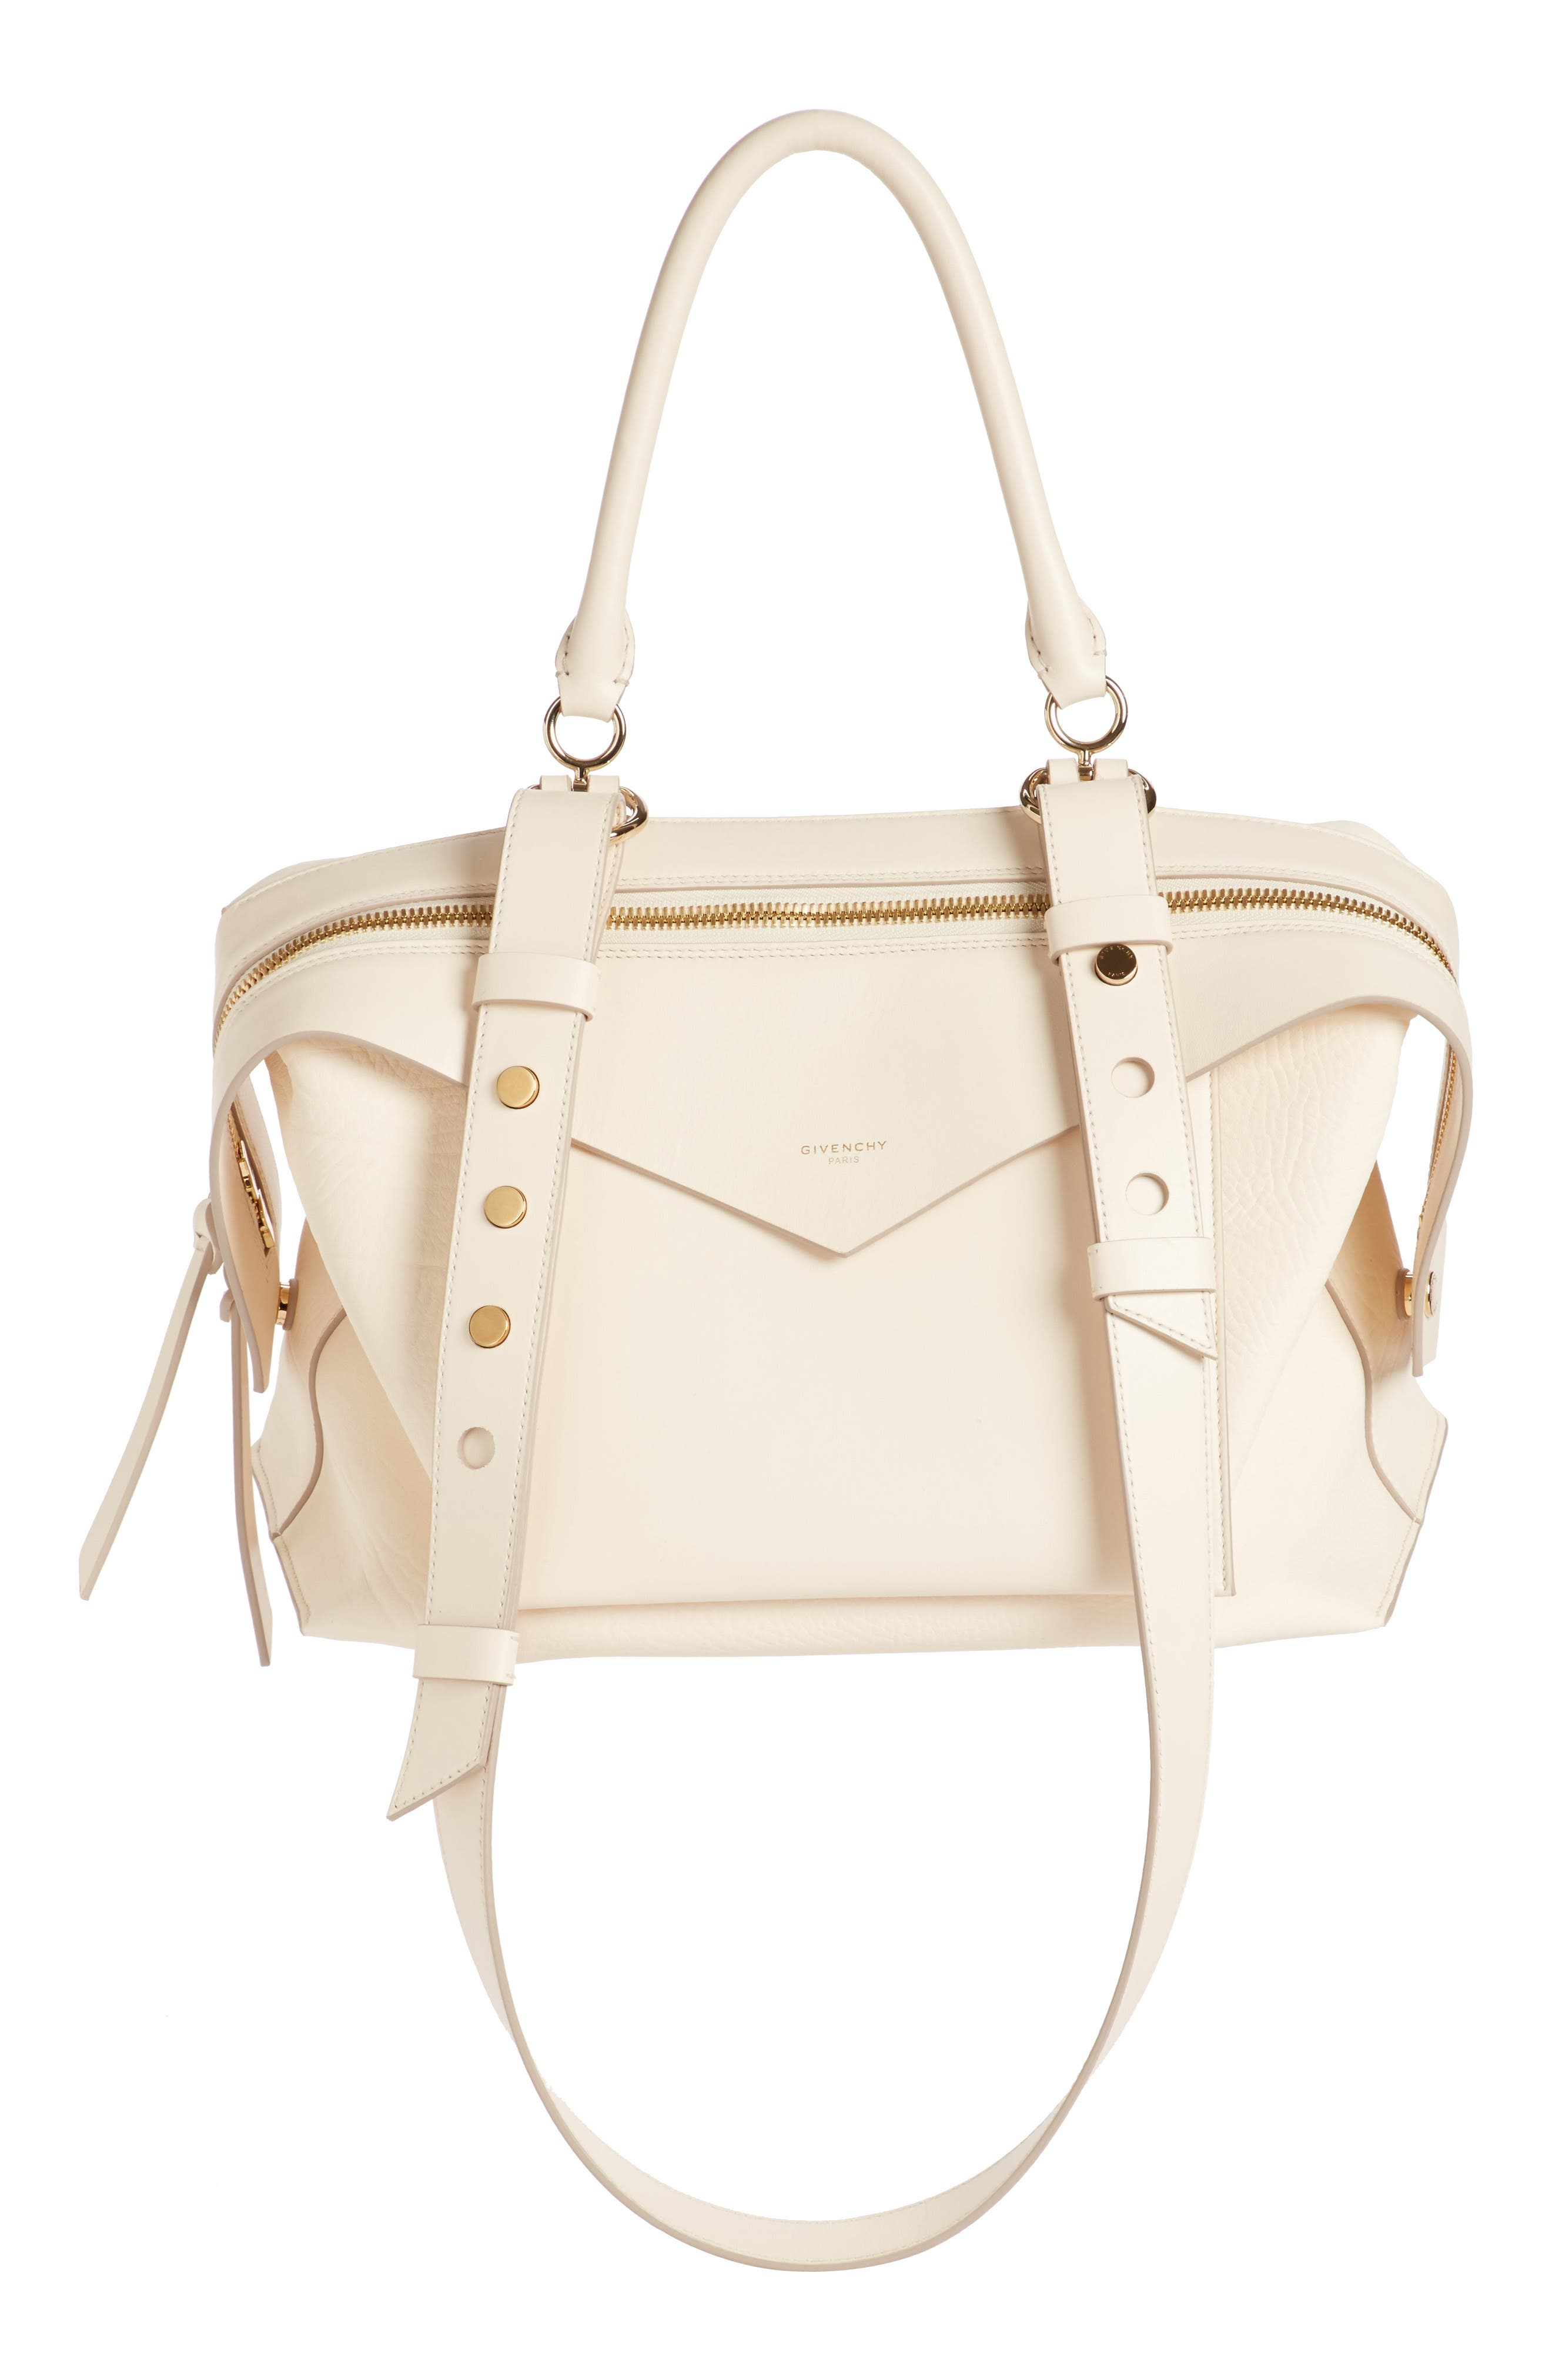 Alternate Image 1 Selected - Givenchy Medium Sway Leather Satchel